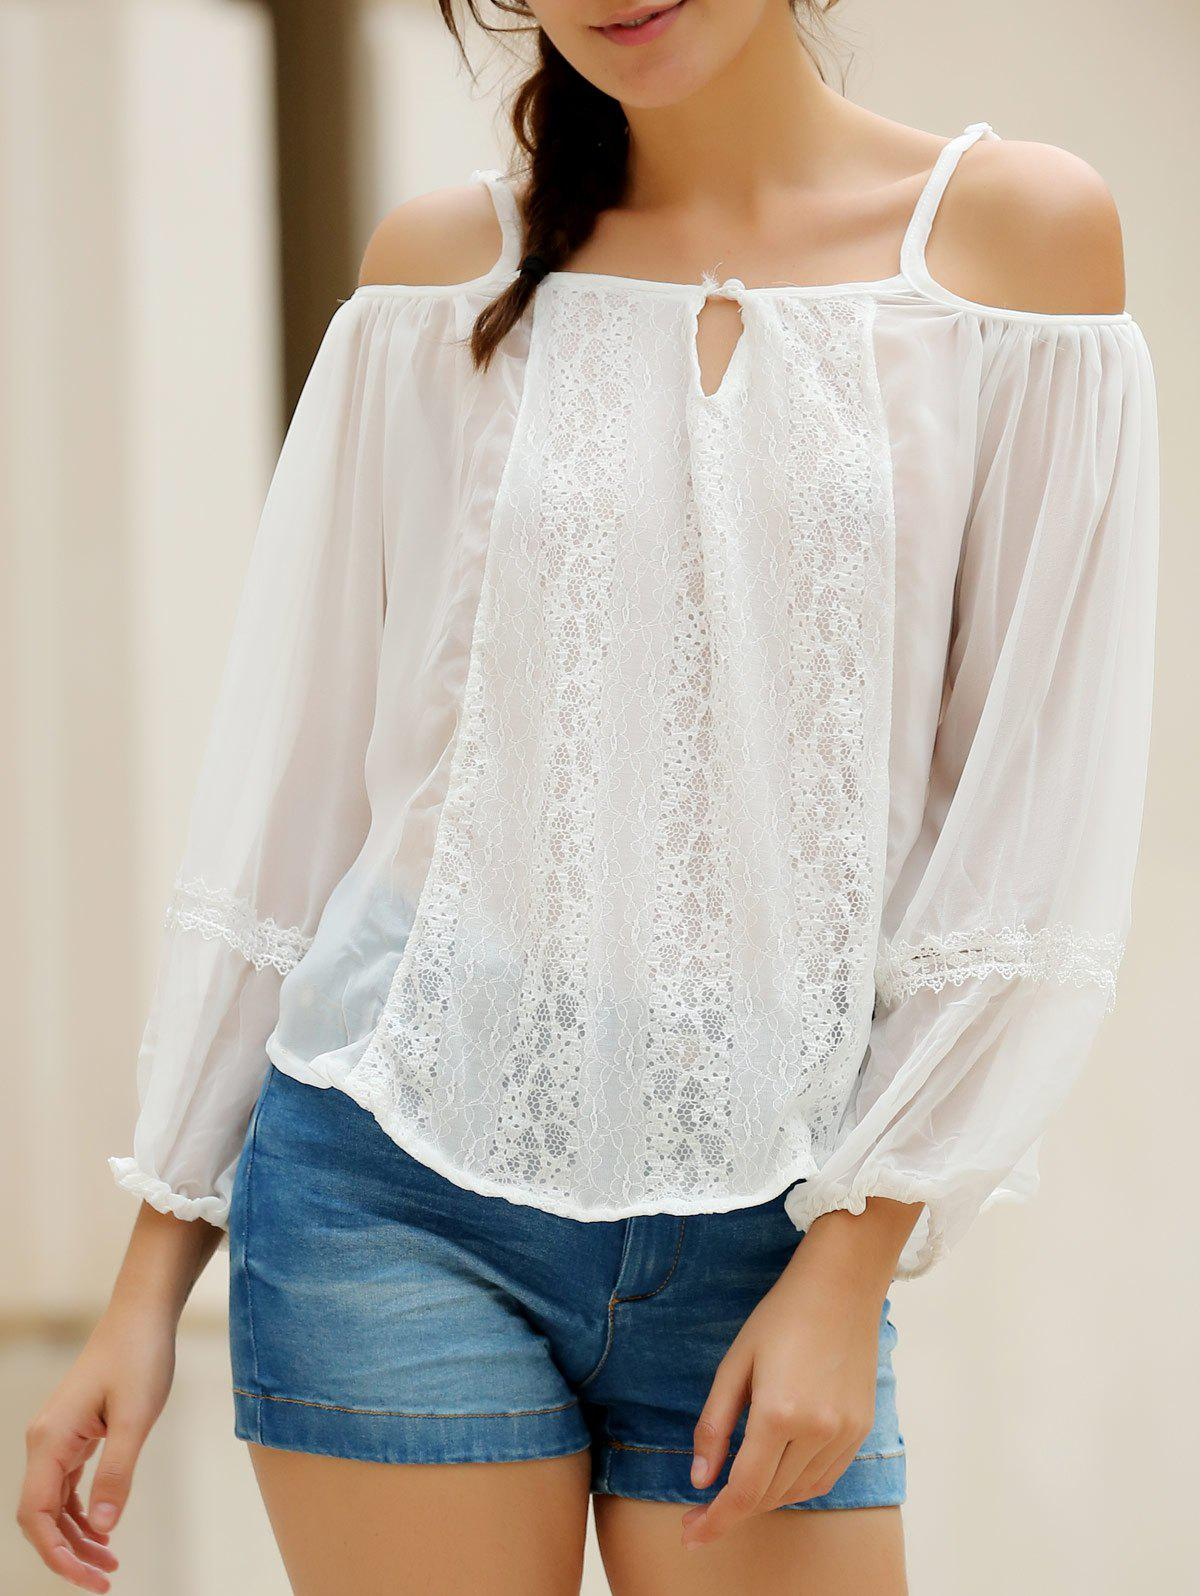 Sexy White Spaghetti Strap Off The Shoulder Long Sleeve Blouse For Women - WHITE M